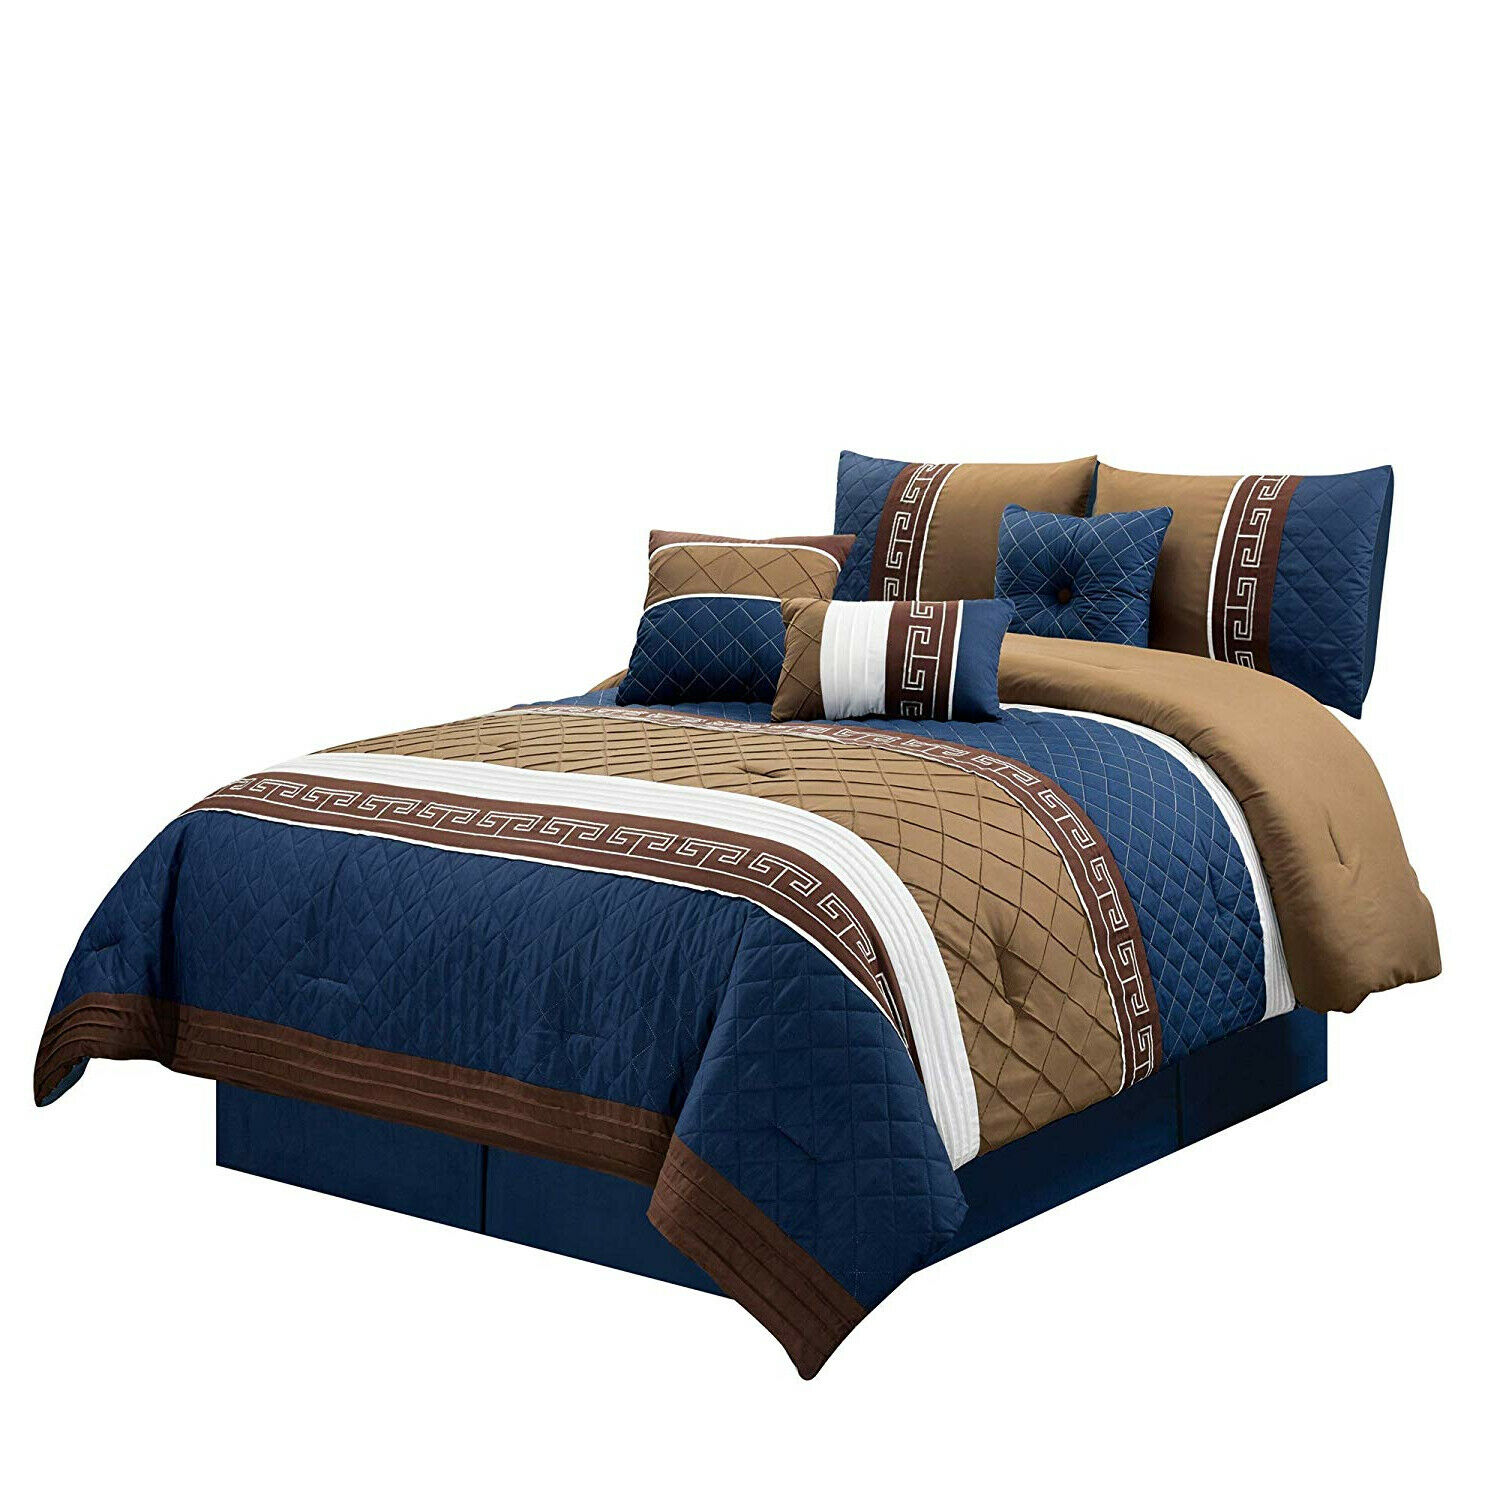 Embroiderot Navy Blau Burgundy Quilted 7 pcs Cal King Queen Comforter Set New